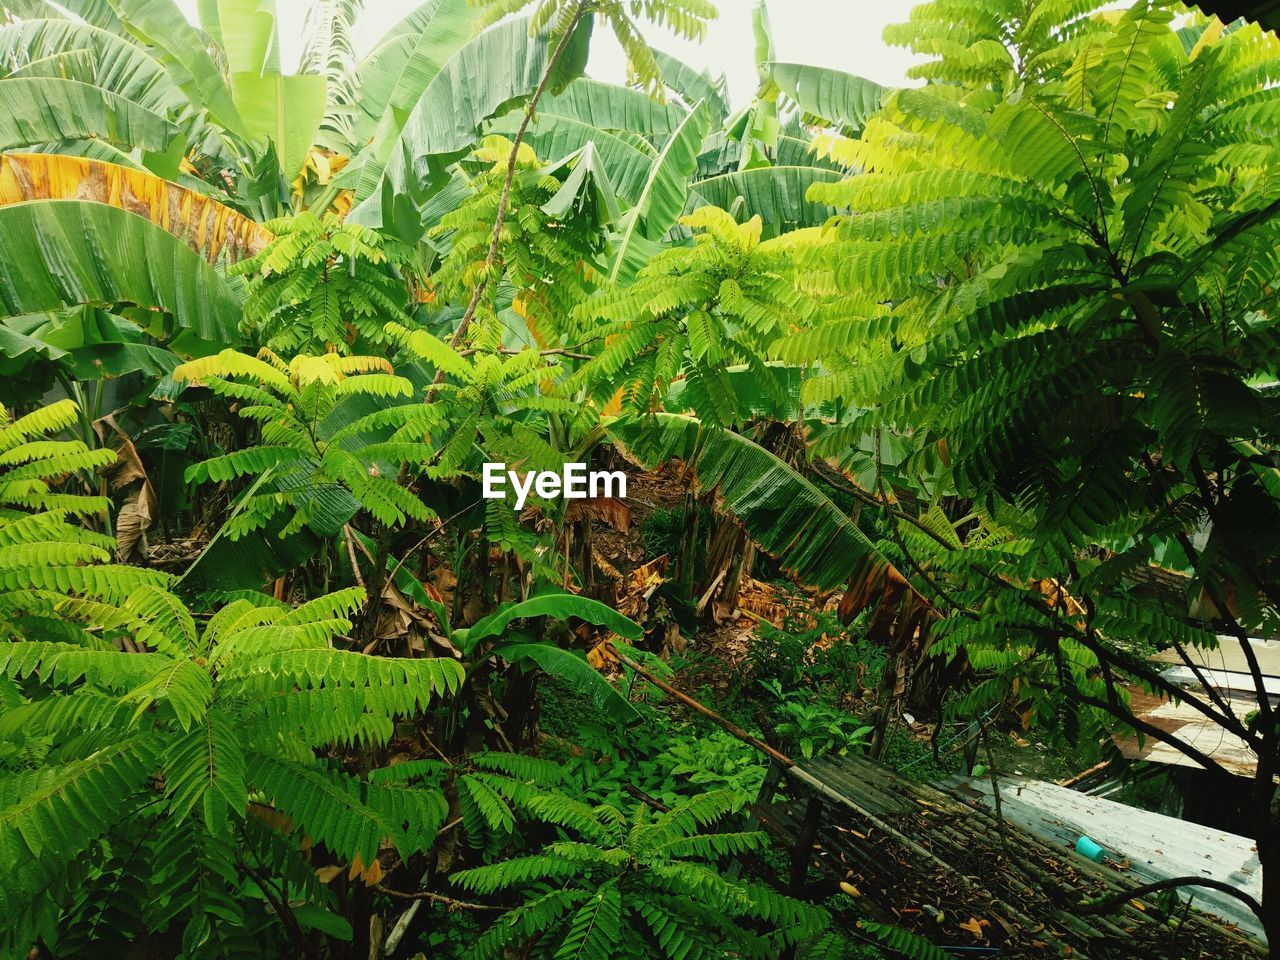 green color, growth, leaf, plant, nature, day, no people, outdoors, fern, close-up, beauty in nature, tree, freshness